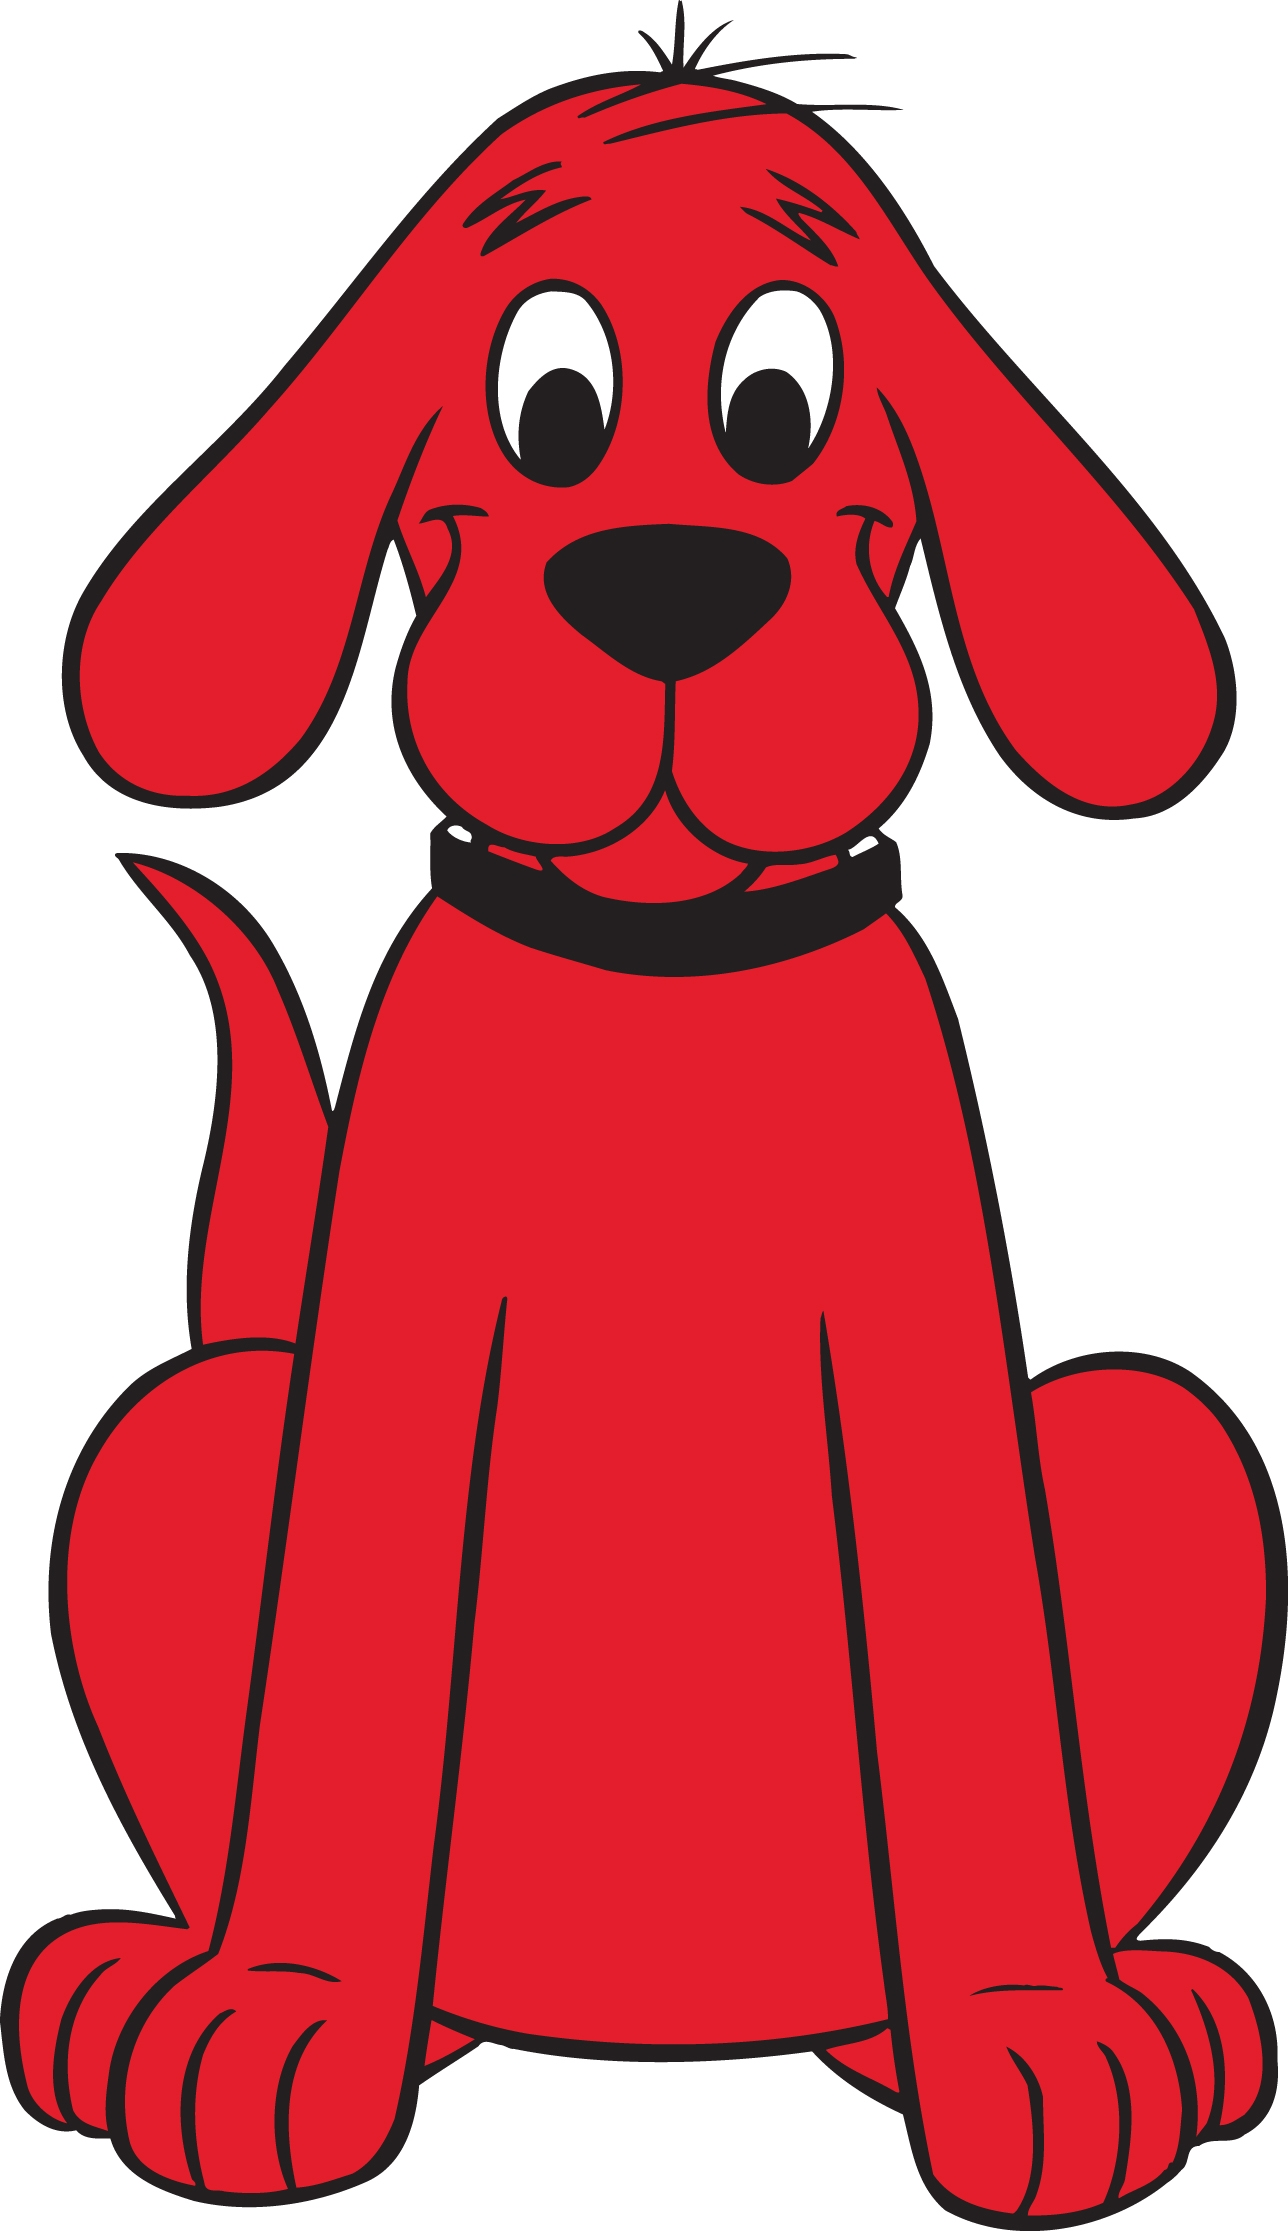 Clifford Drawing at GetDrawings.com | Free for personal use Clifford ...